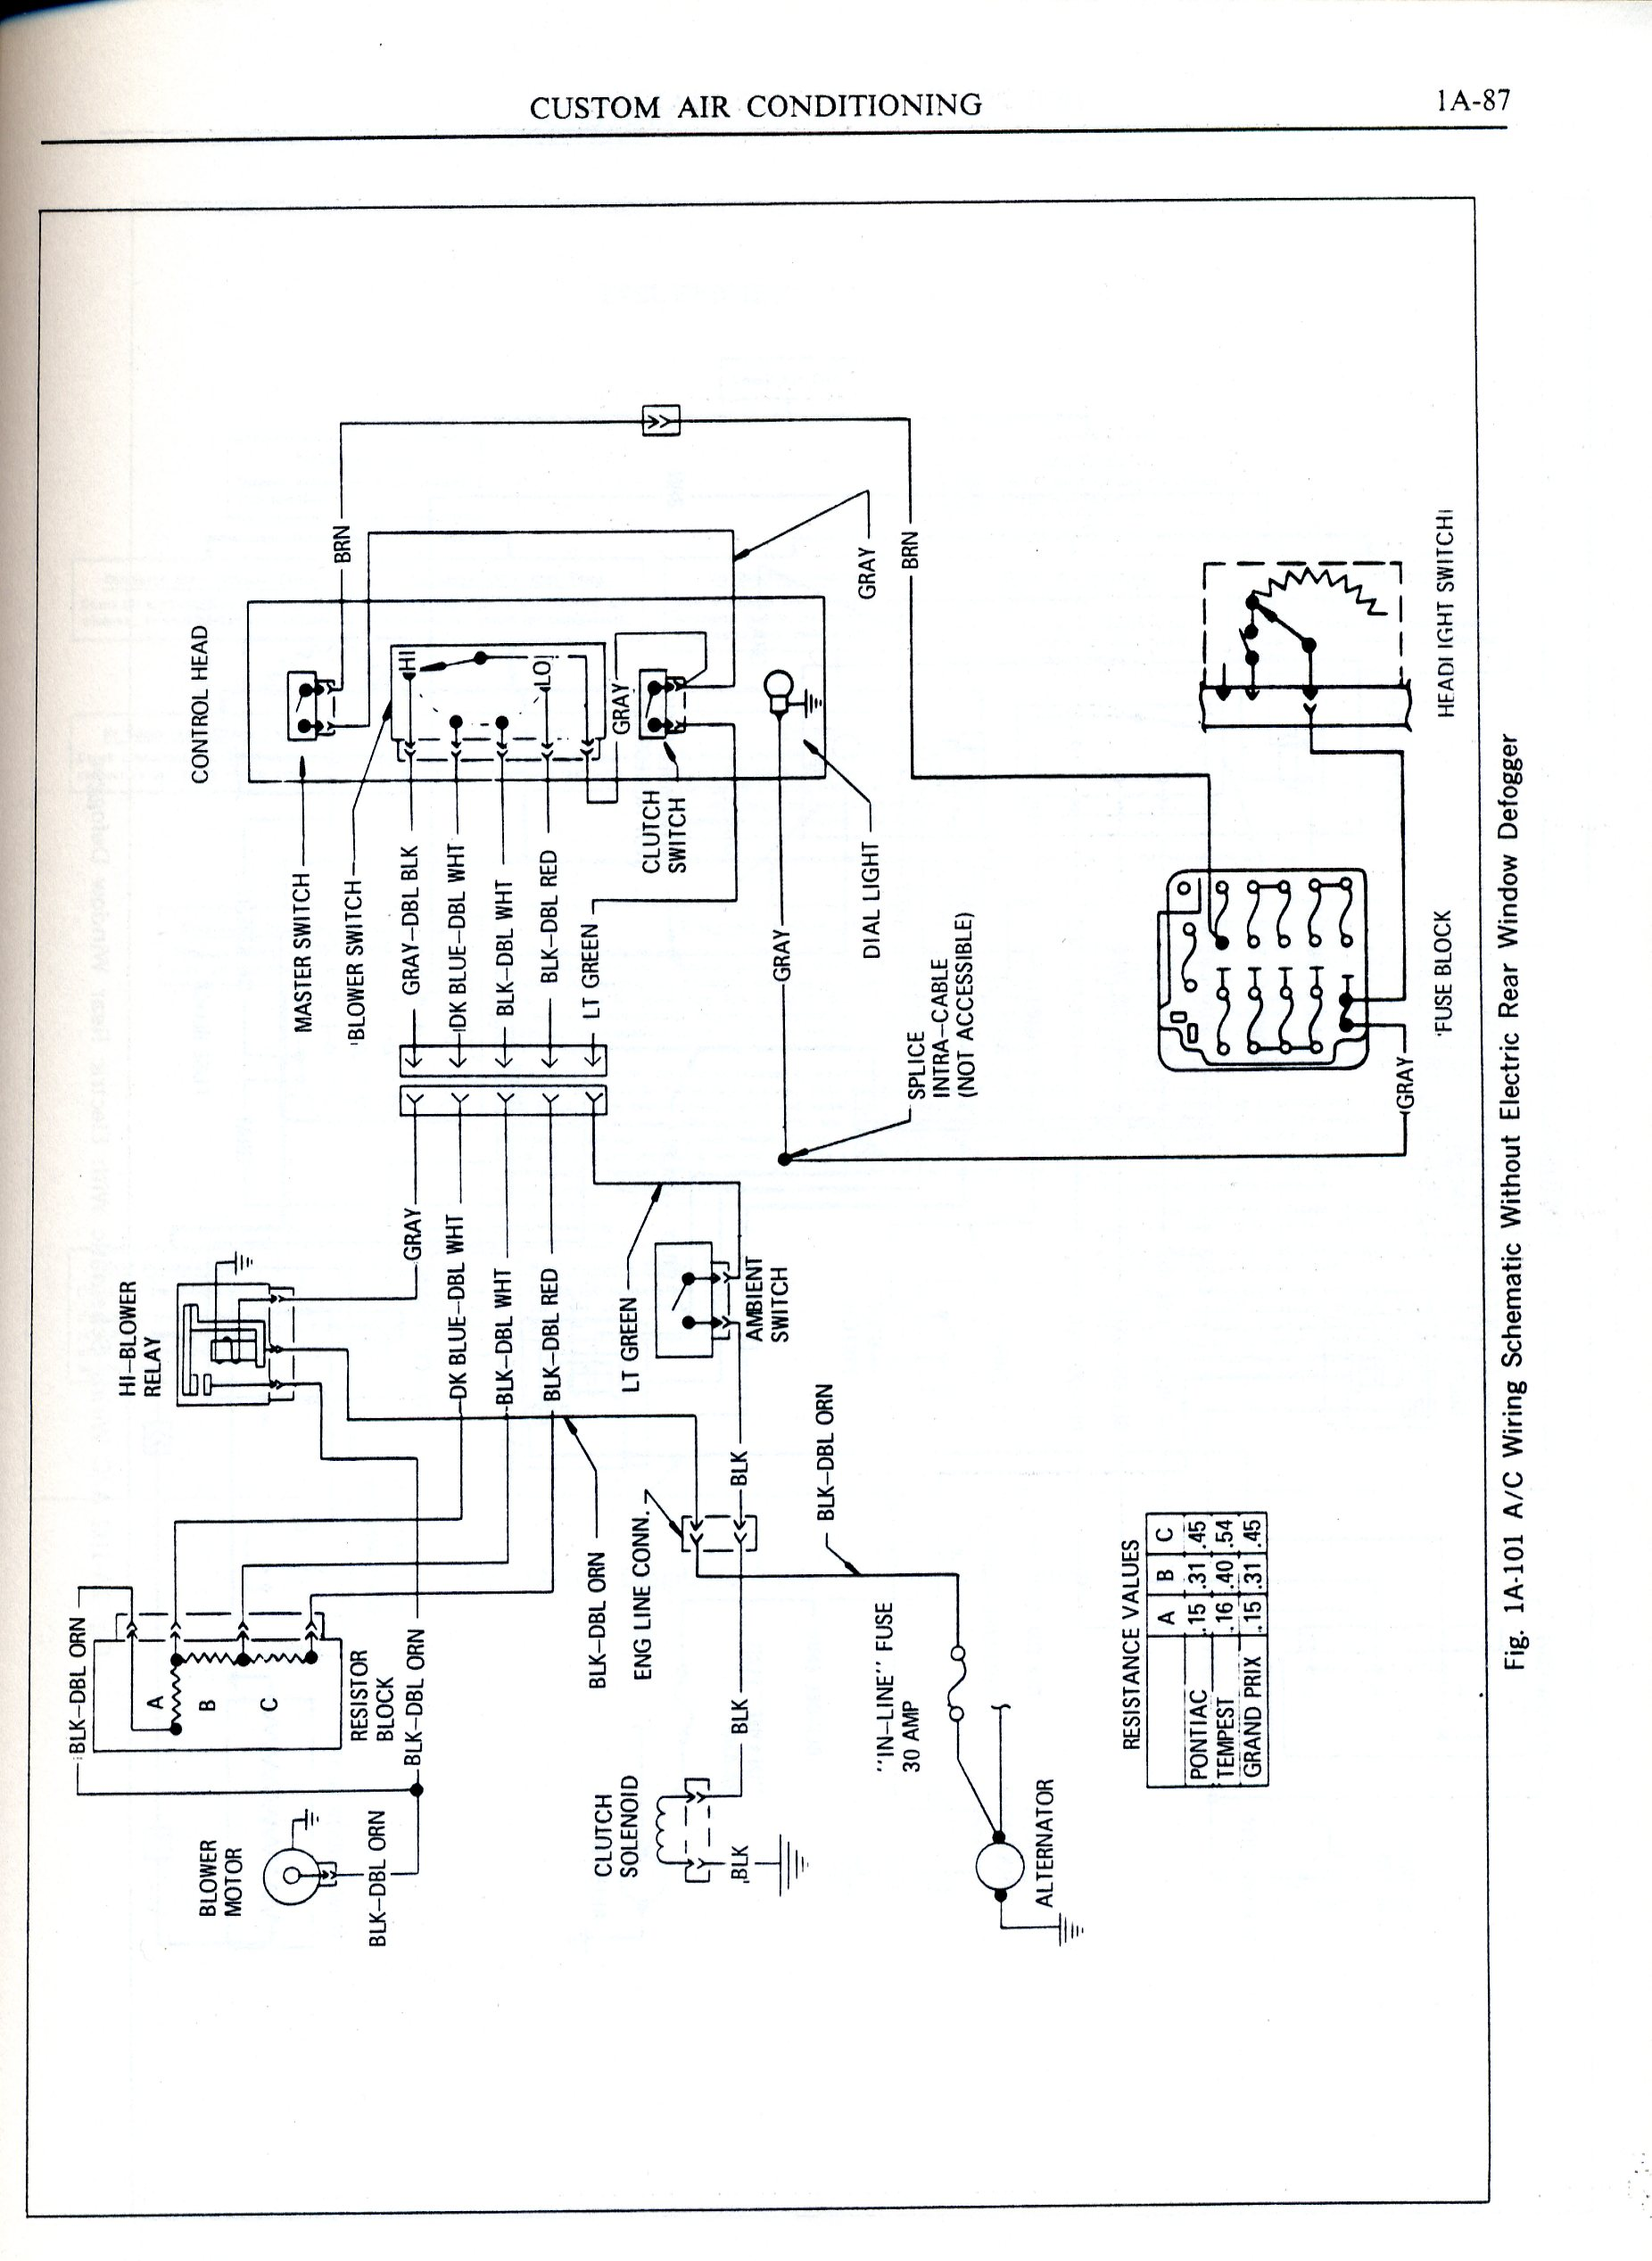 1967 Camaro Tach Wiring Diagram Starting Know About Lemans Schematic 1970 Gto Dash Tachometer 1965